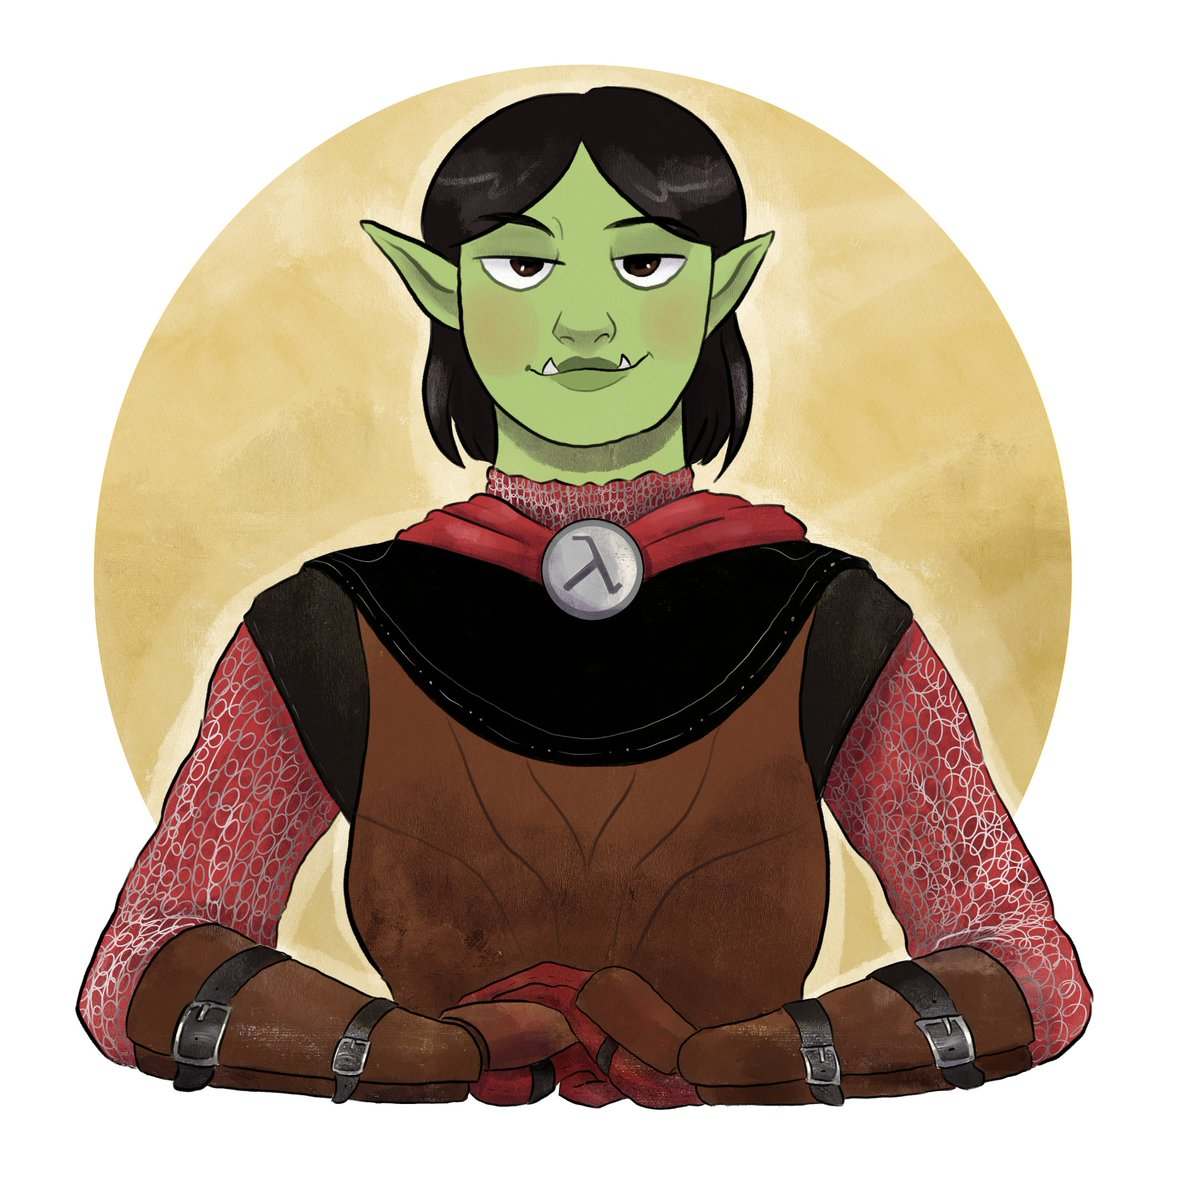 I 100% forgot to share this here lol but here's a #DnDcharacter commission I did for @stephgerk's half-orc cleric, Amox! #DnD #DnDartists